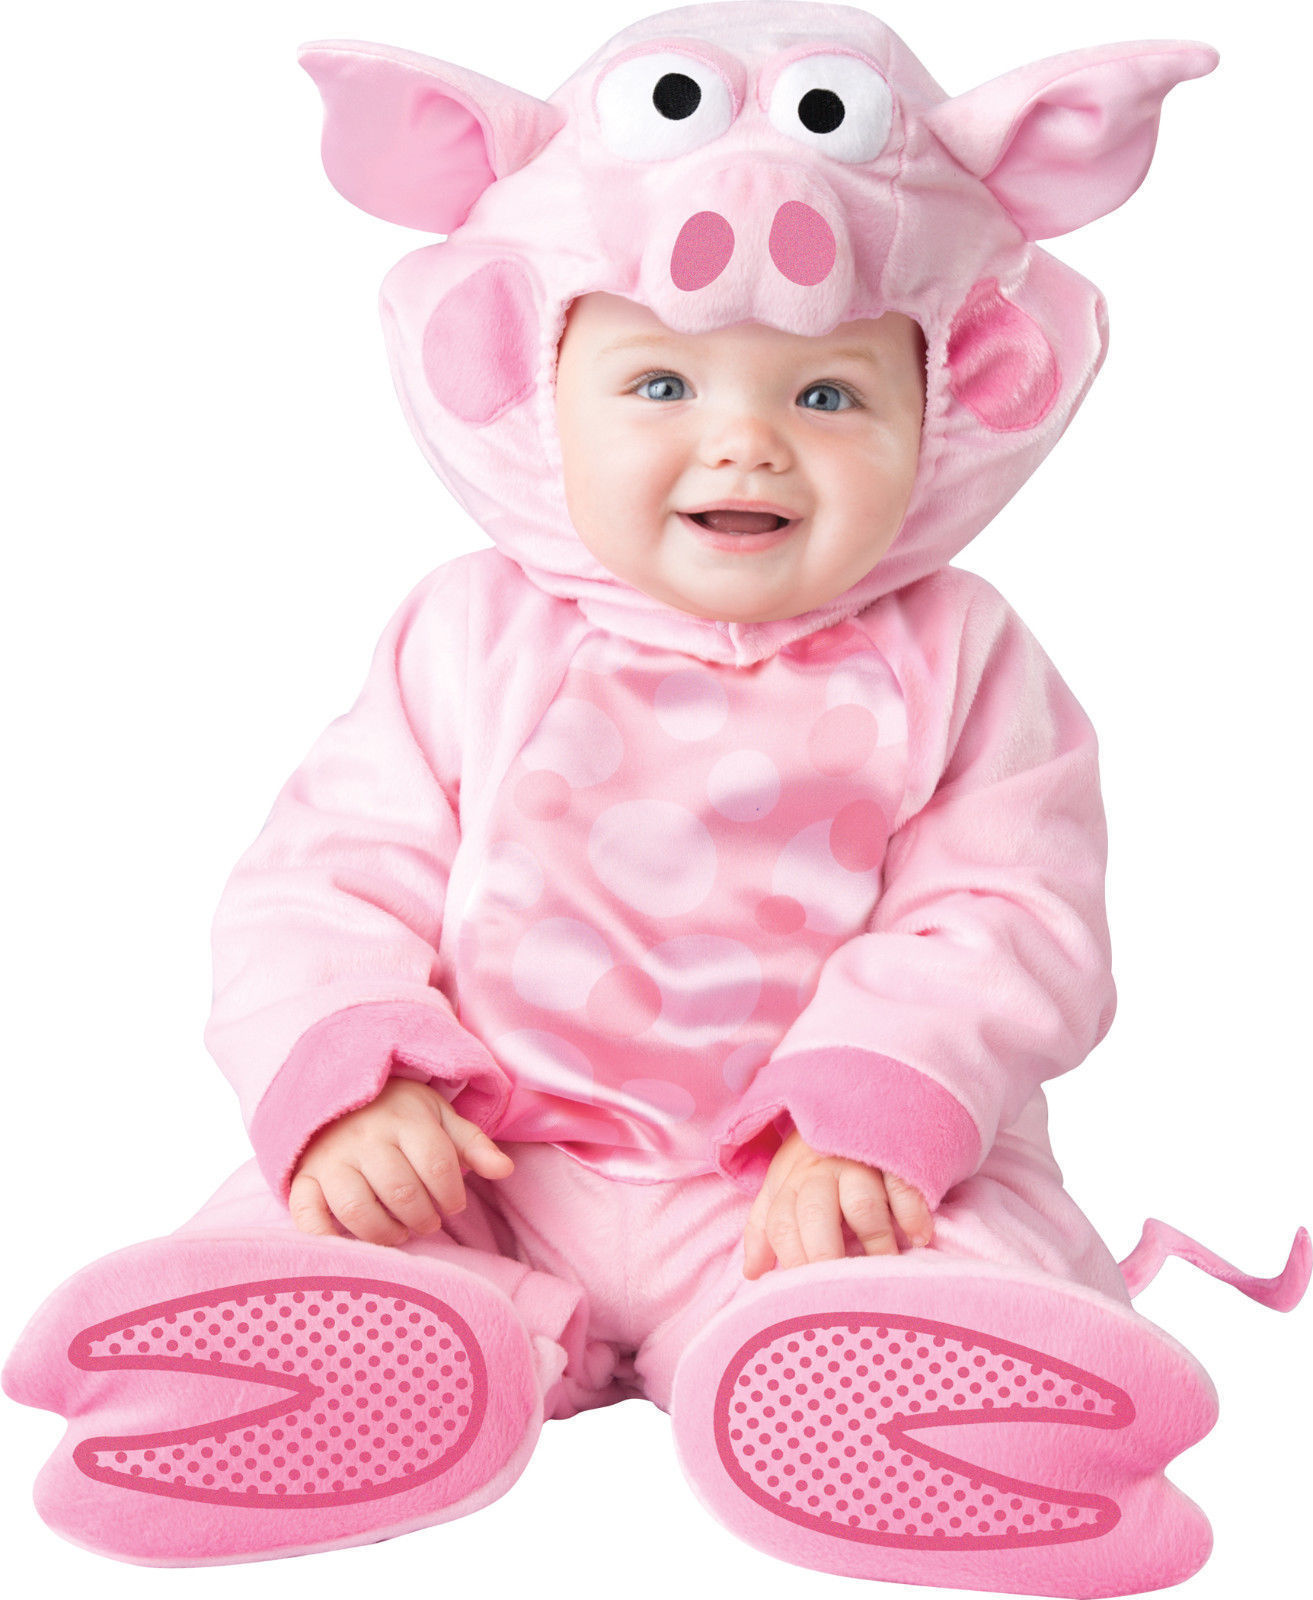 Infant Toddler Precious Piggy Pig Animal Costume size 12-18